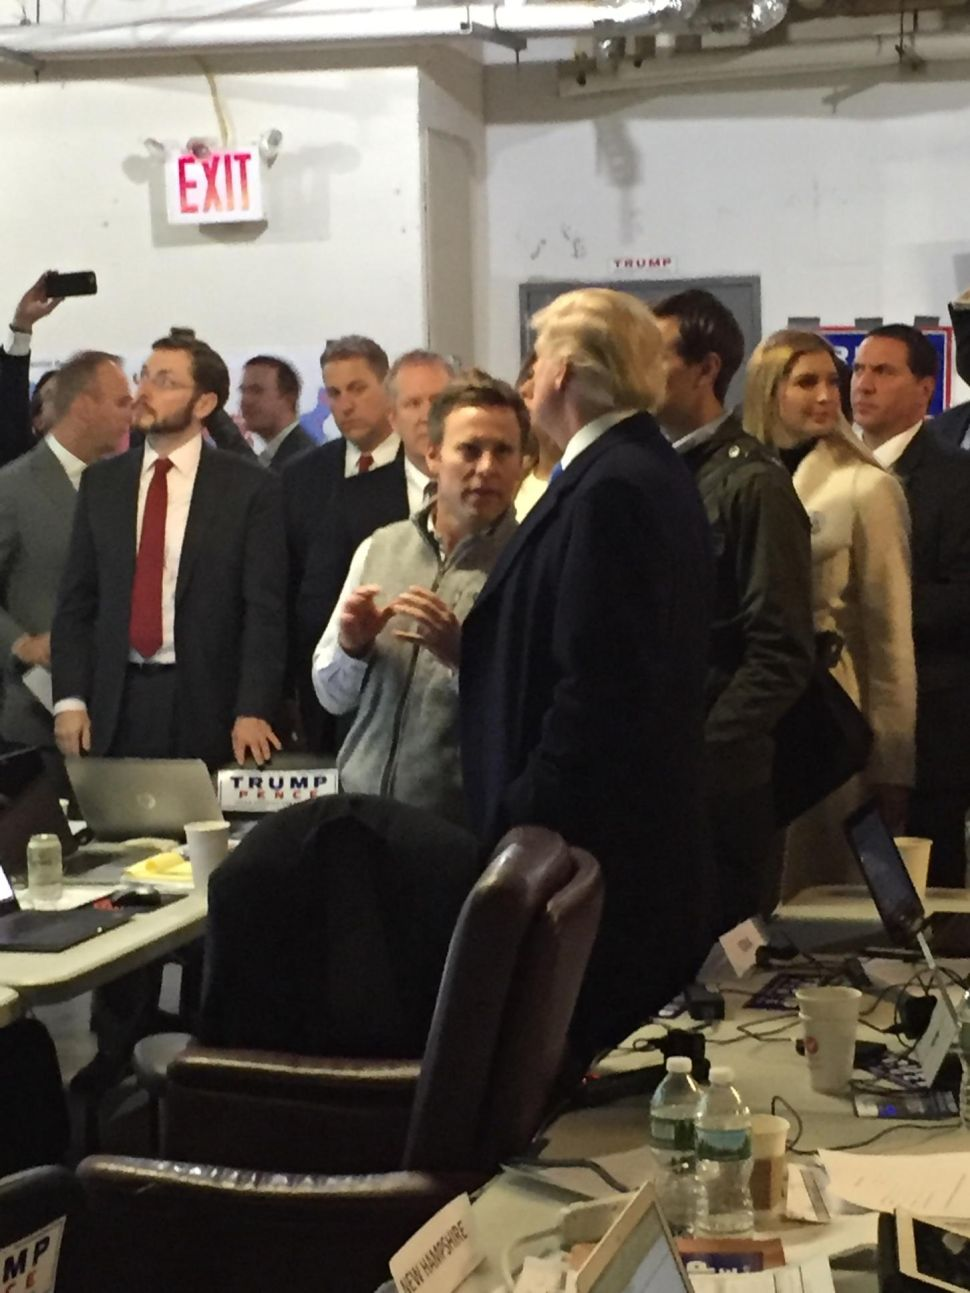 NJ Down to the Wire with Stepien in Trump World on  Election Day